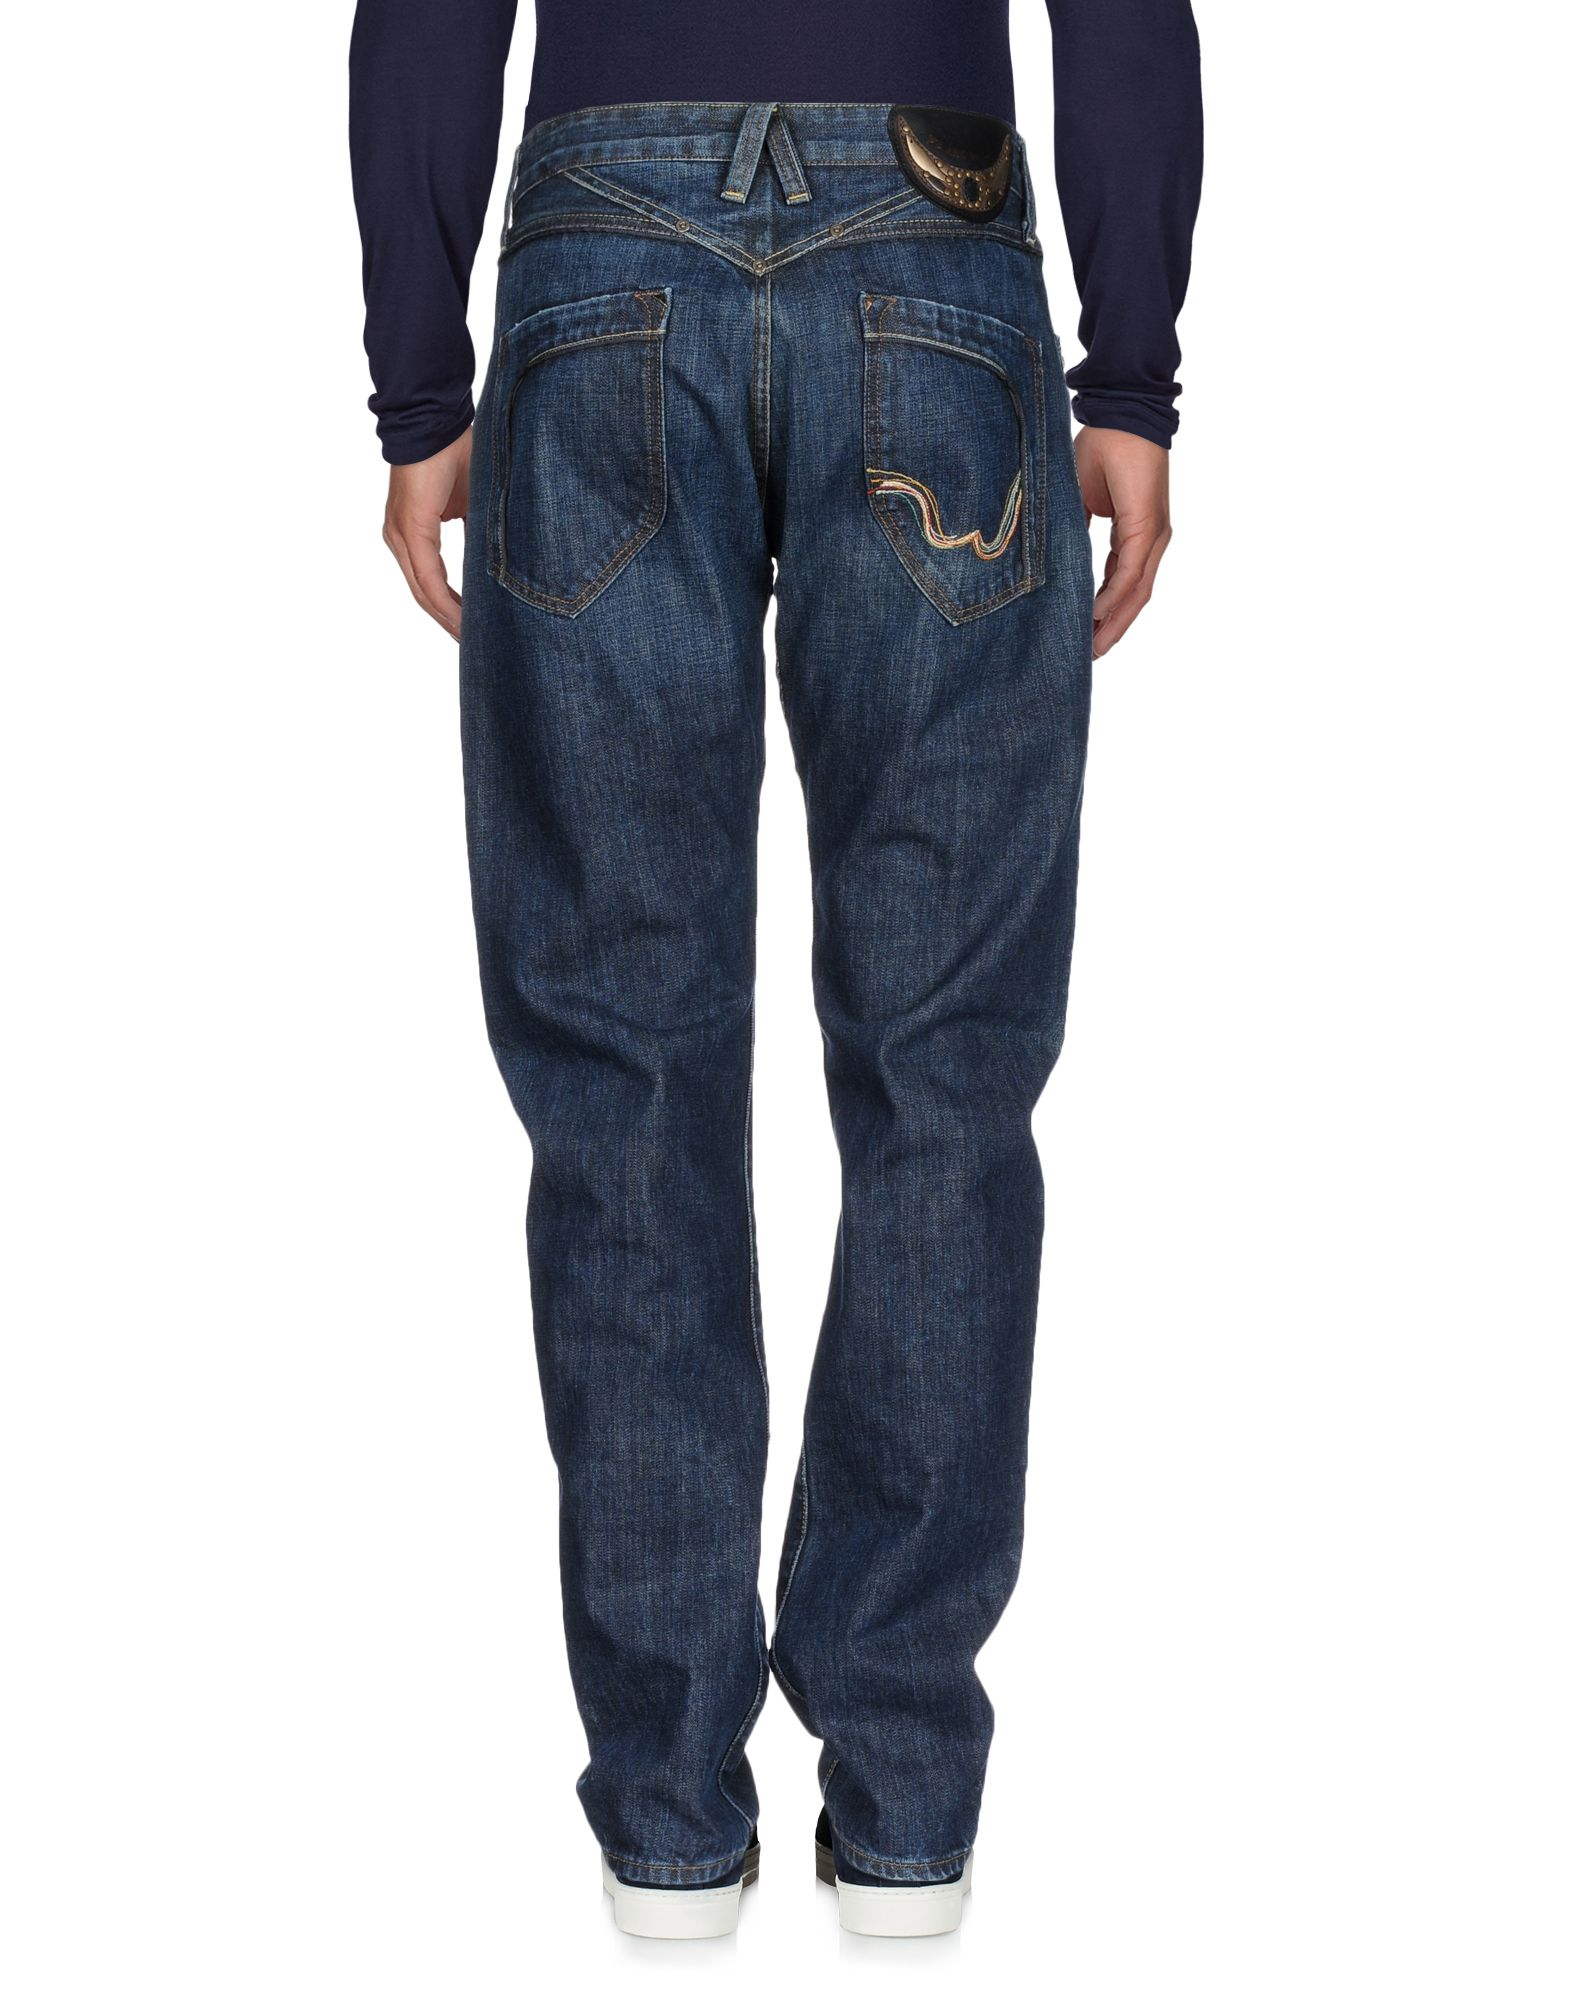 Pantaloni Jeans We Are Replay Uomo - - Uomo 42675060PM c26dd6